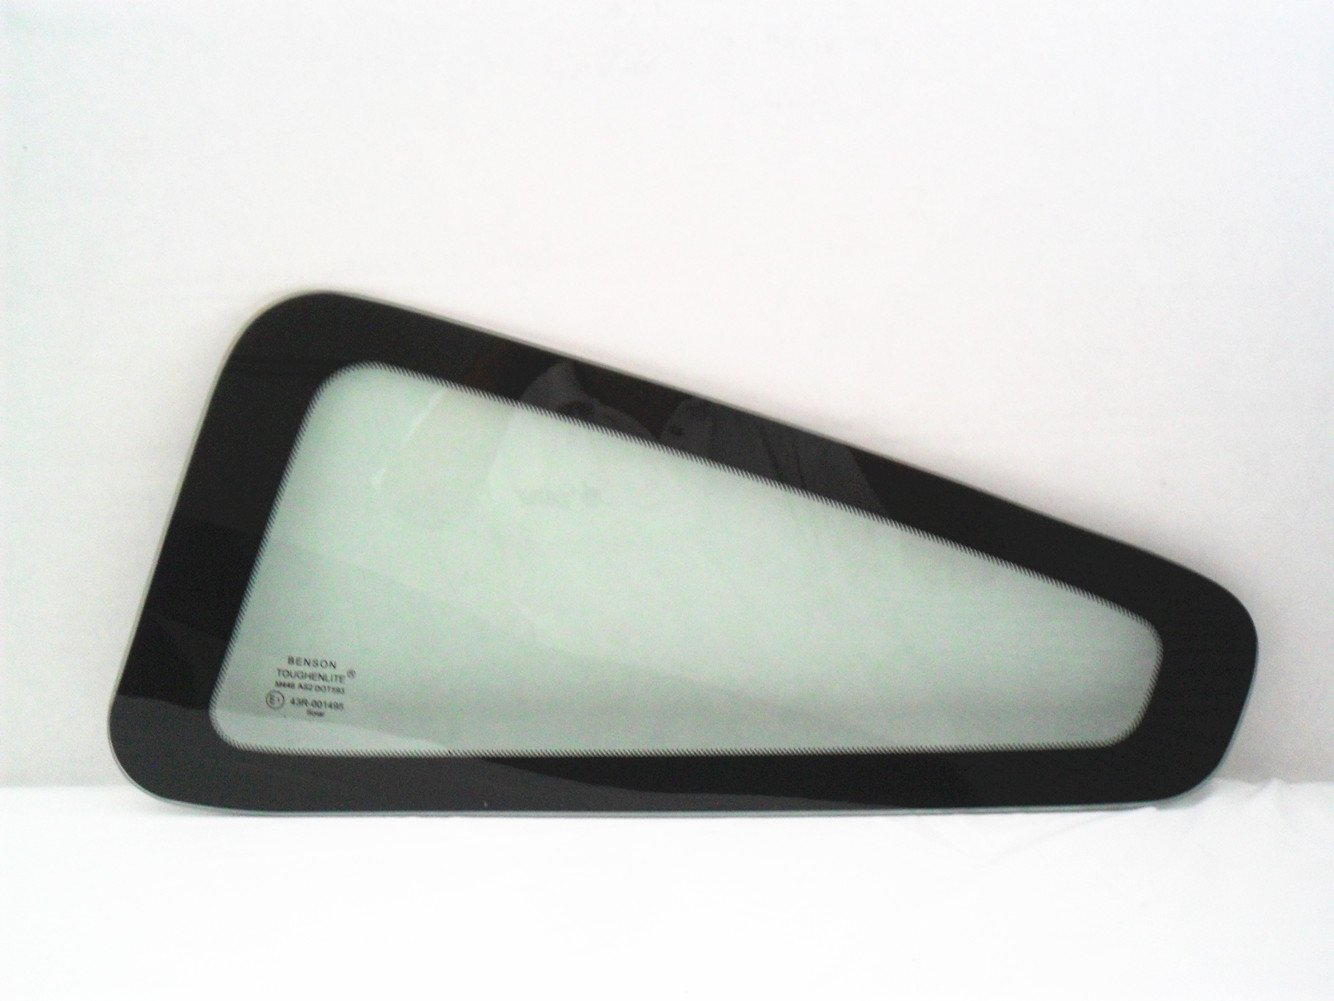 NAGD Fits 2005-2009 Ford Mustang 2 Door Coupe Driver Left Side Rear Quarter Glass Quarter Window